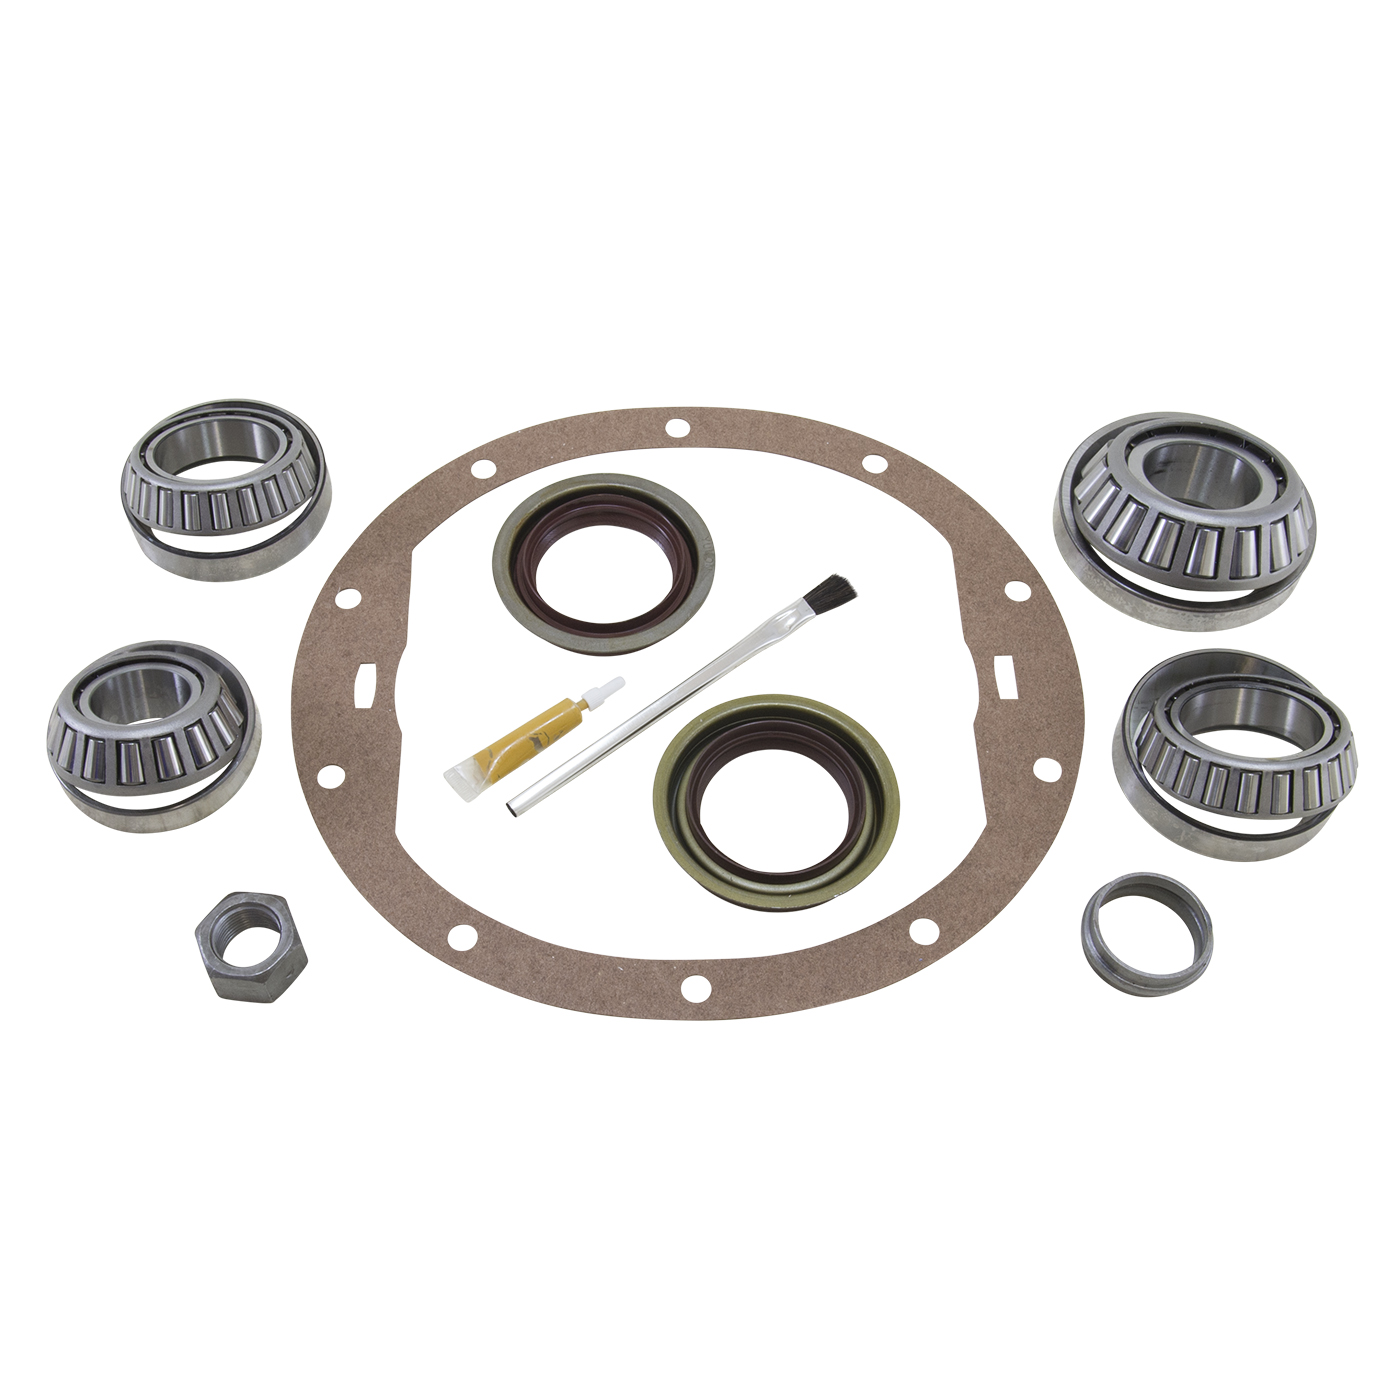 BK GM9.5-A - Yukon Bearing install kit for '79-'97 GM 9.5